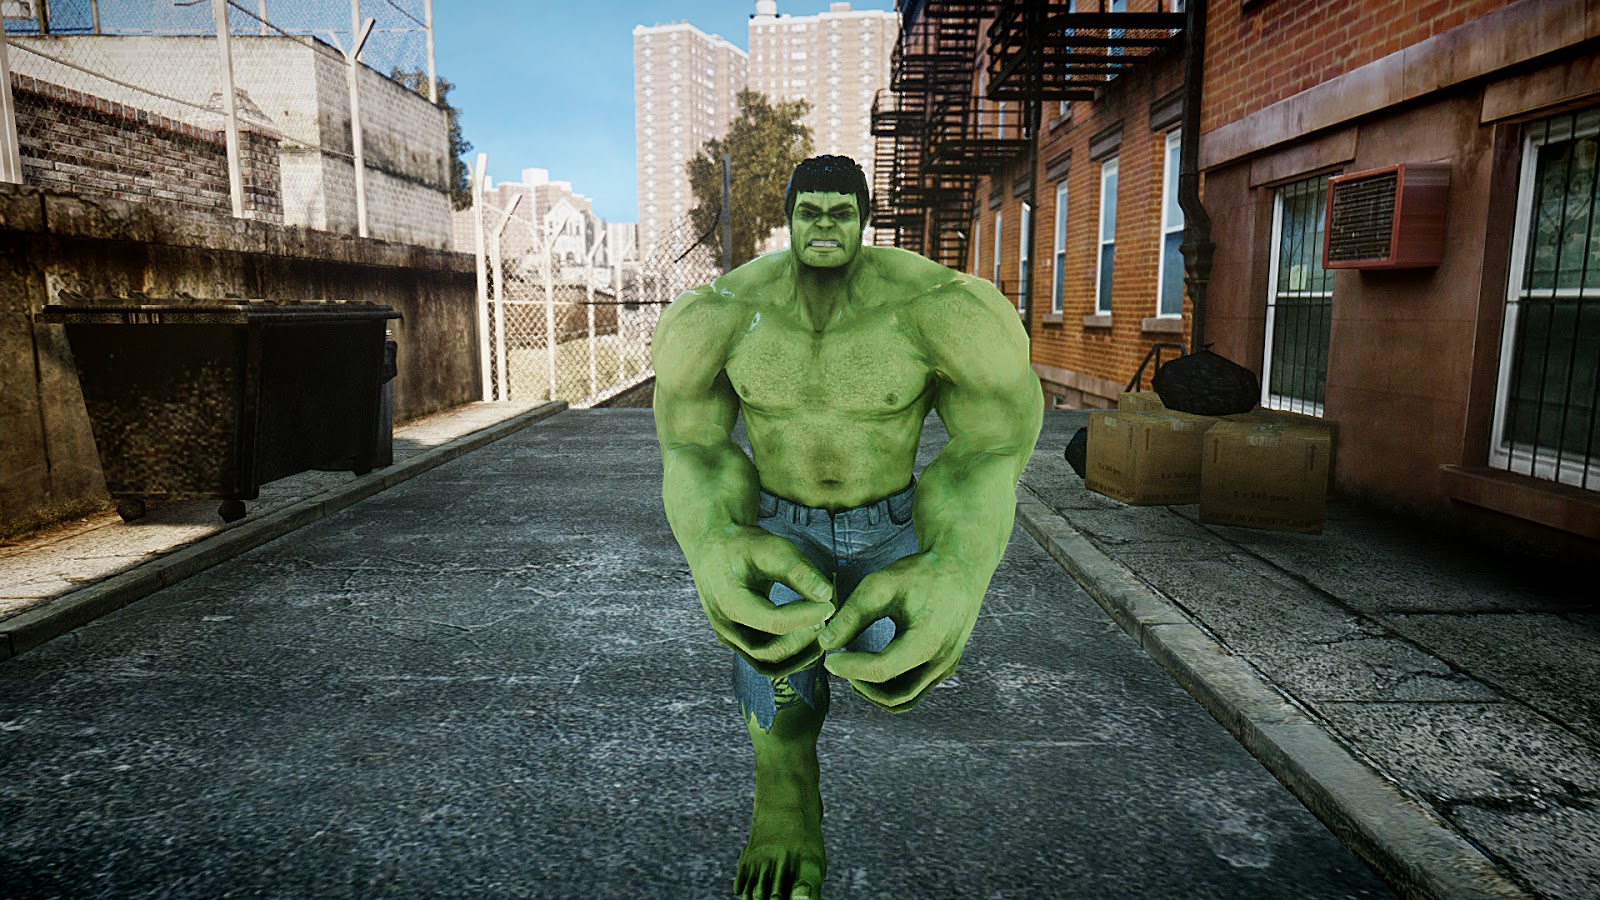 GTA 5,GTAV,GTA IV Mods and Skins: GTA IV HULK